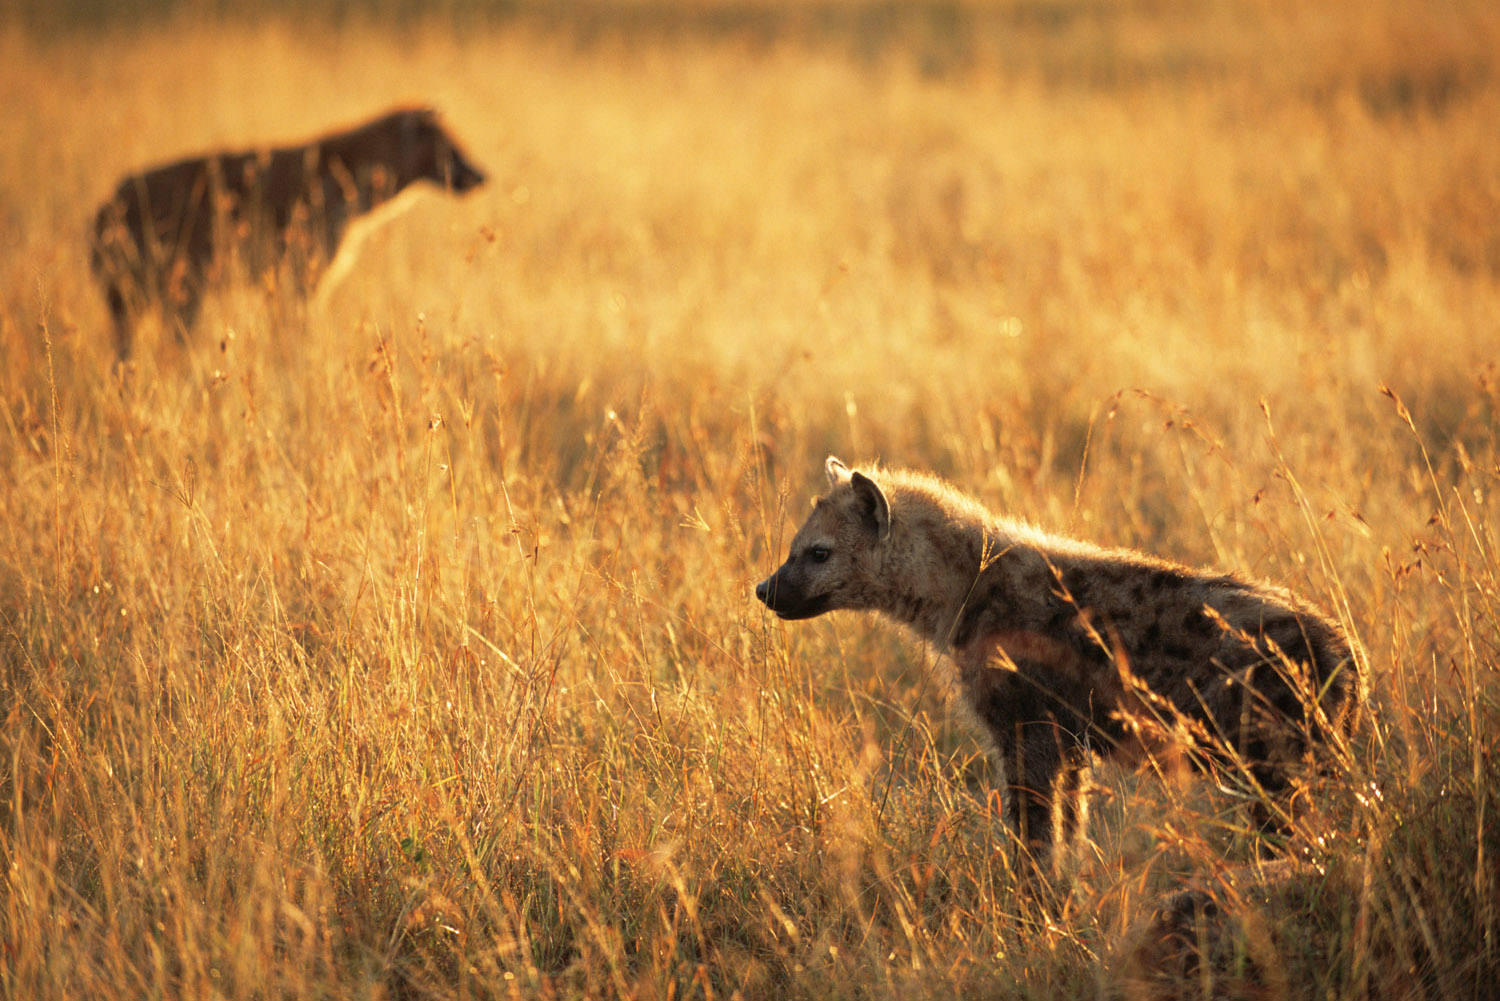 Spotted hyena cubs at dawn, Masai Mara National Reserve, Kenya